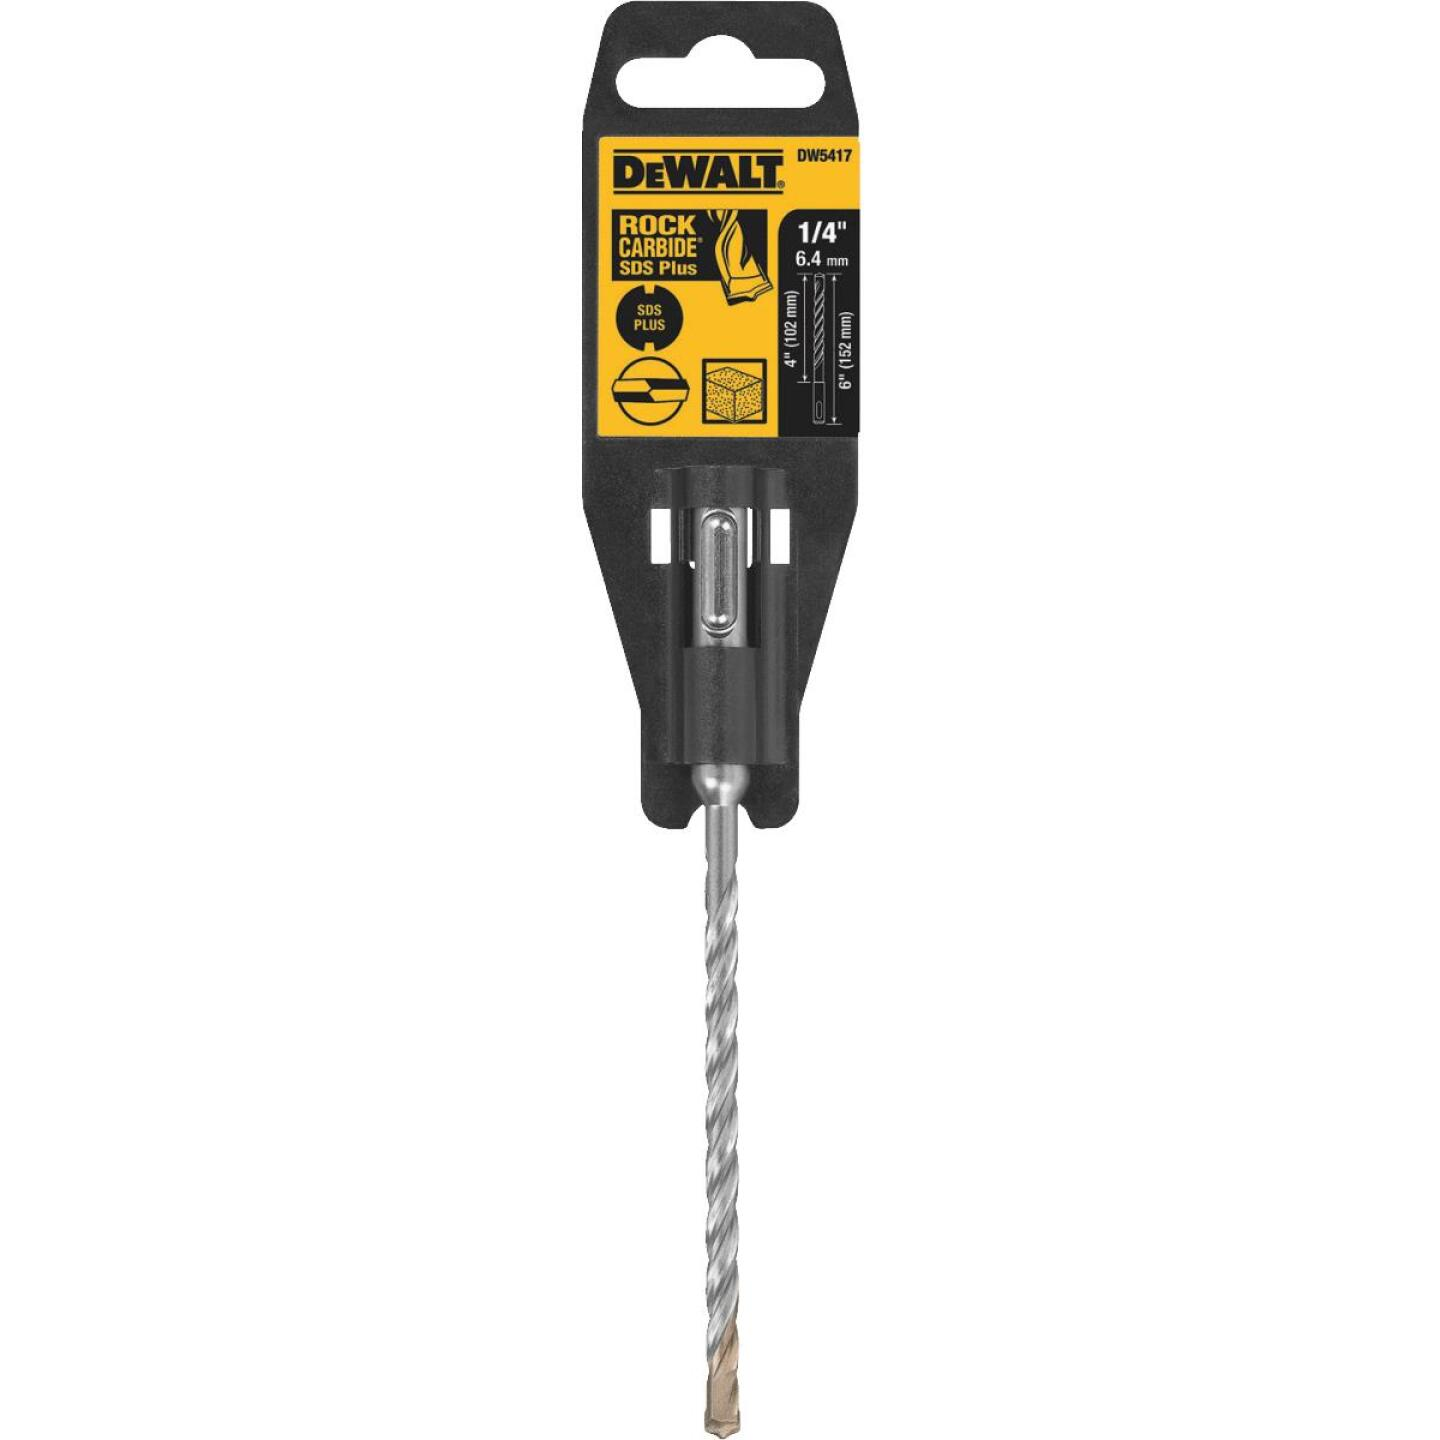 DeWalt SDS-Plus 1/4 In. x  6 In. 2-Cutter Rotary Hammer Drill Bit Image 2